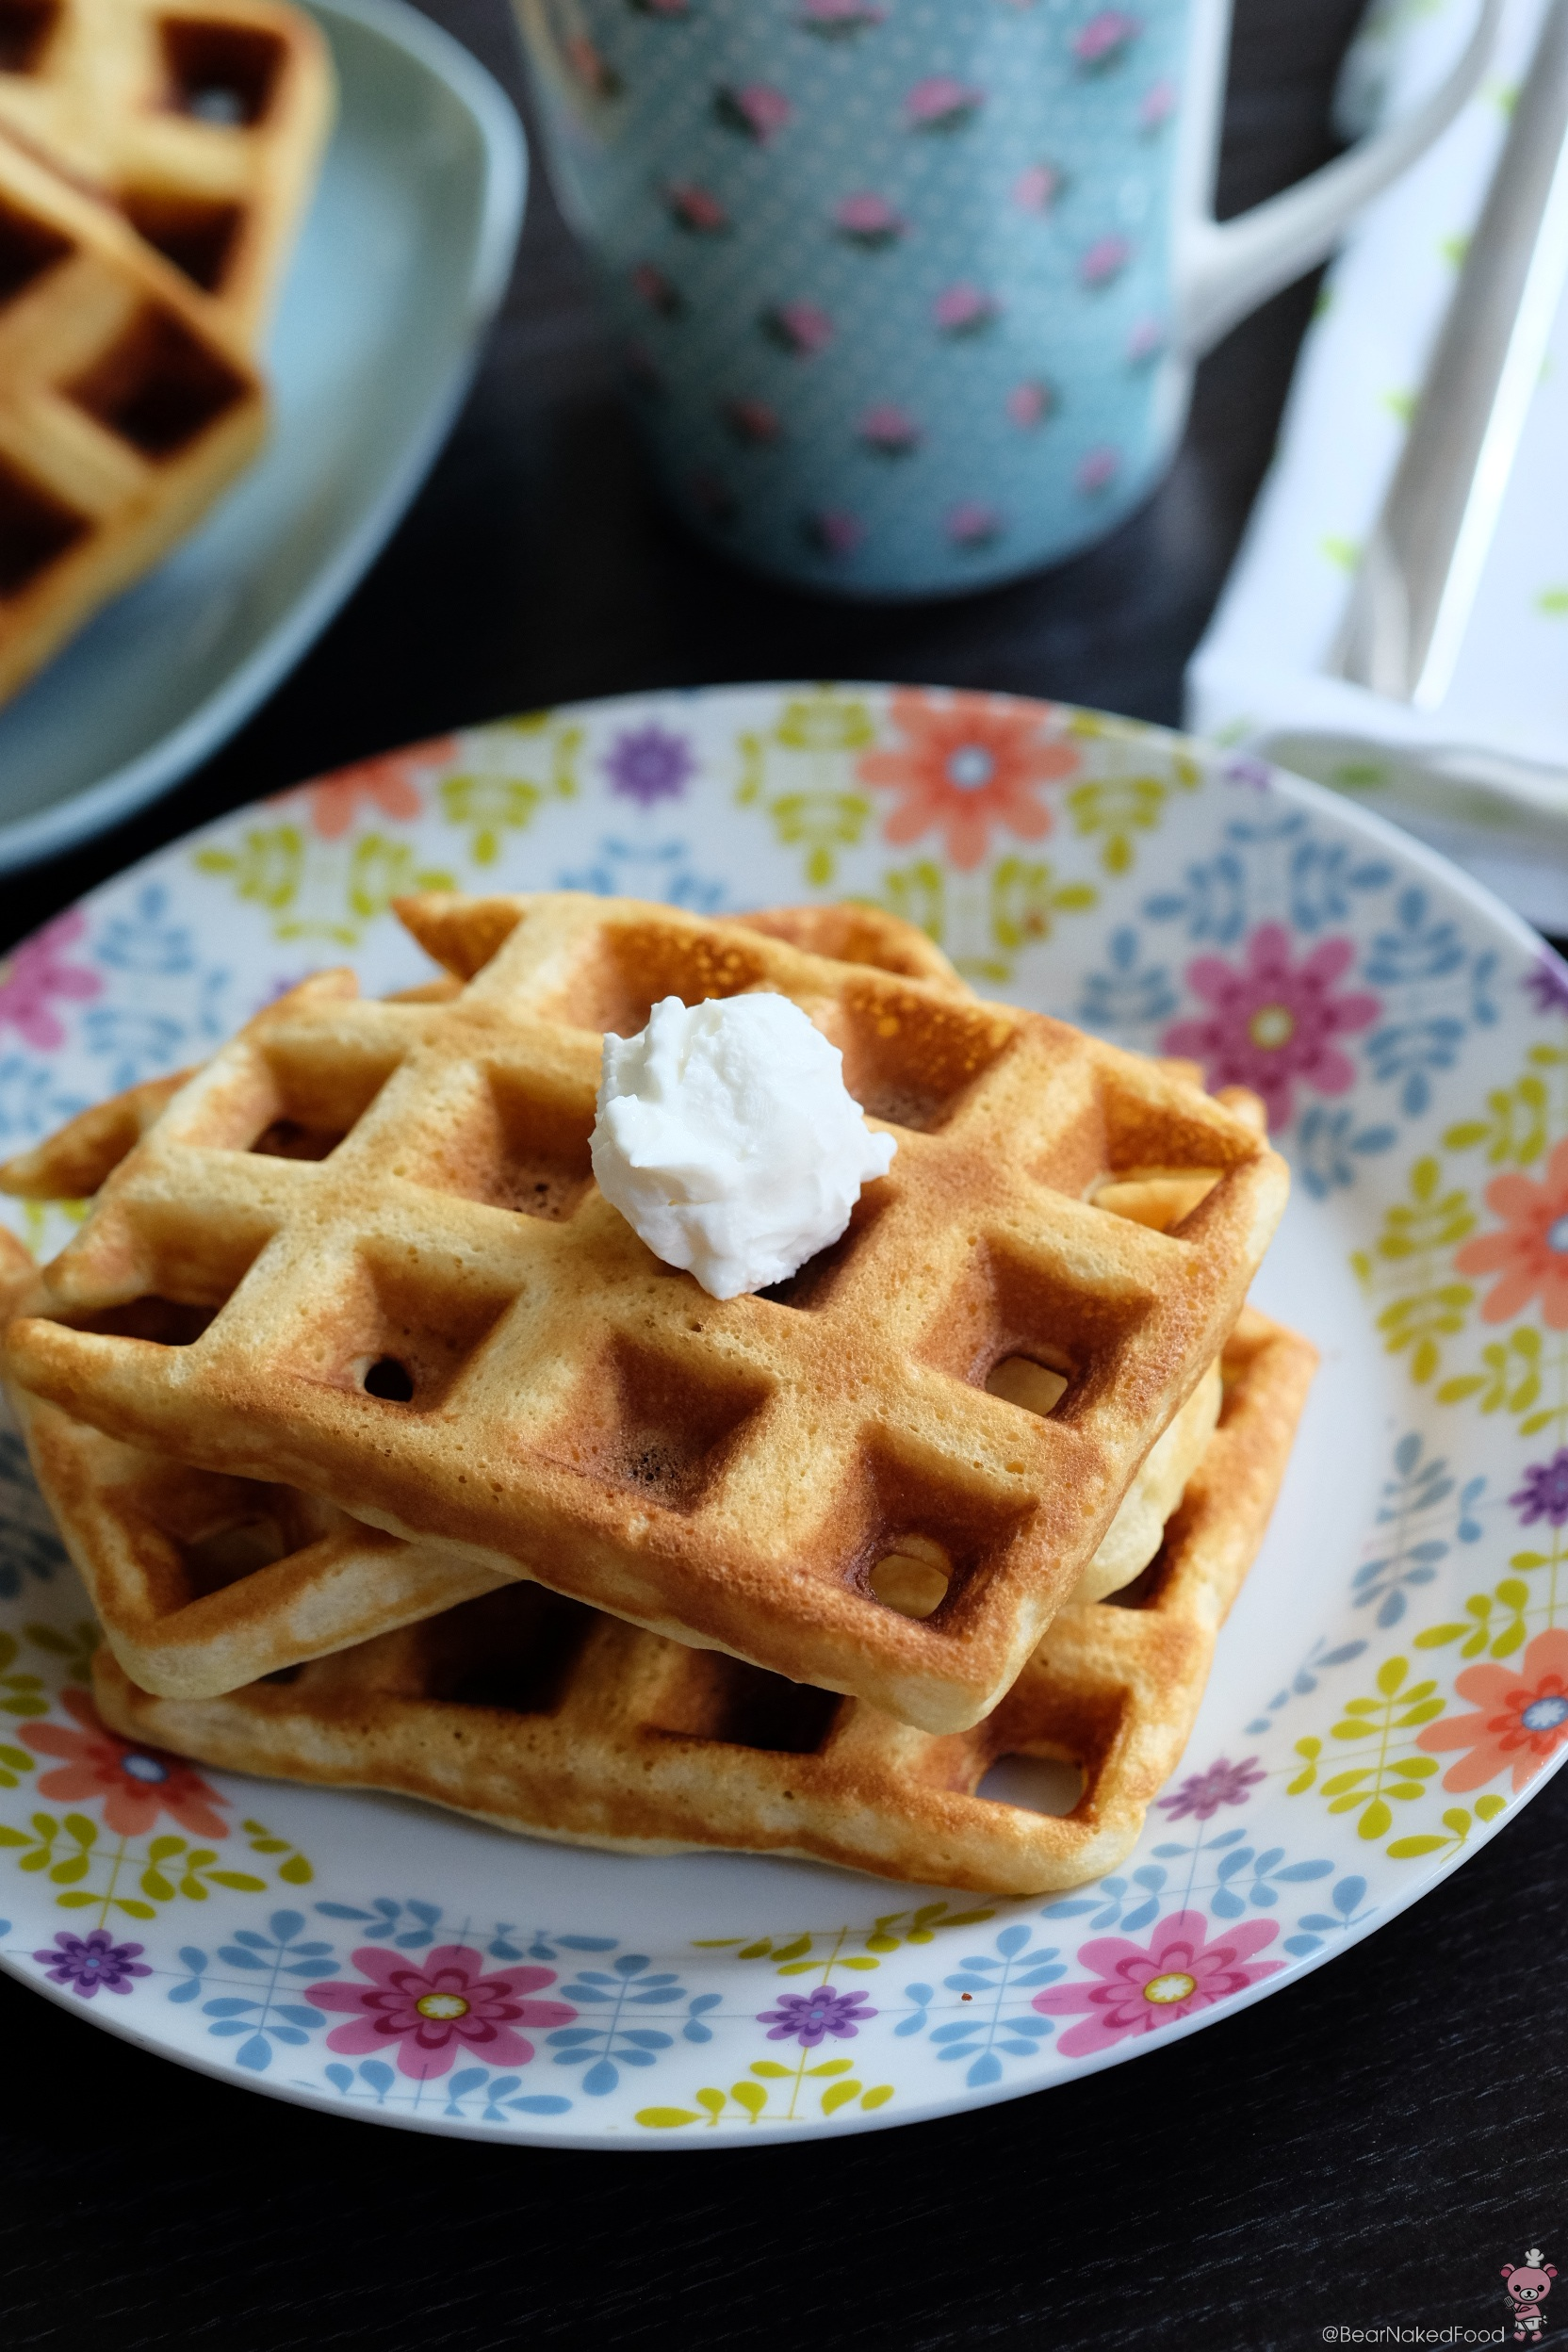 Bear Naked Food Crispy and Light Buttermilk Waffles